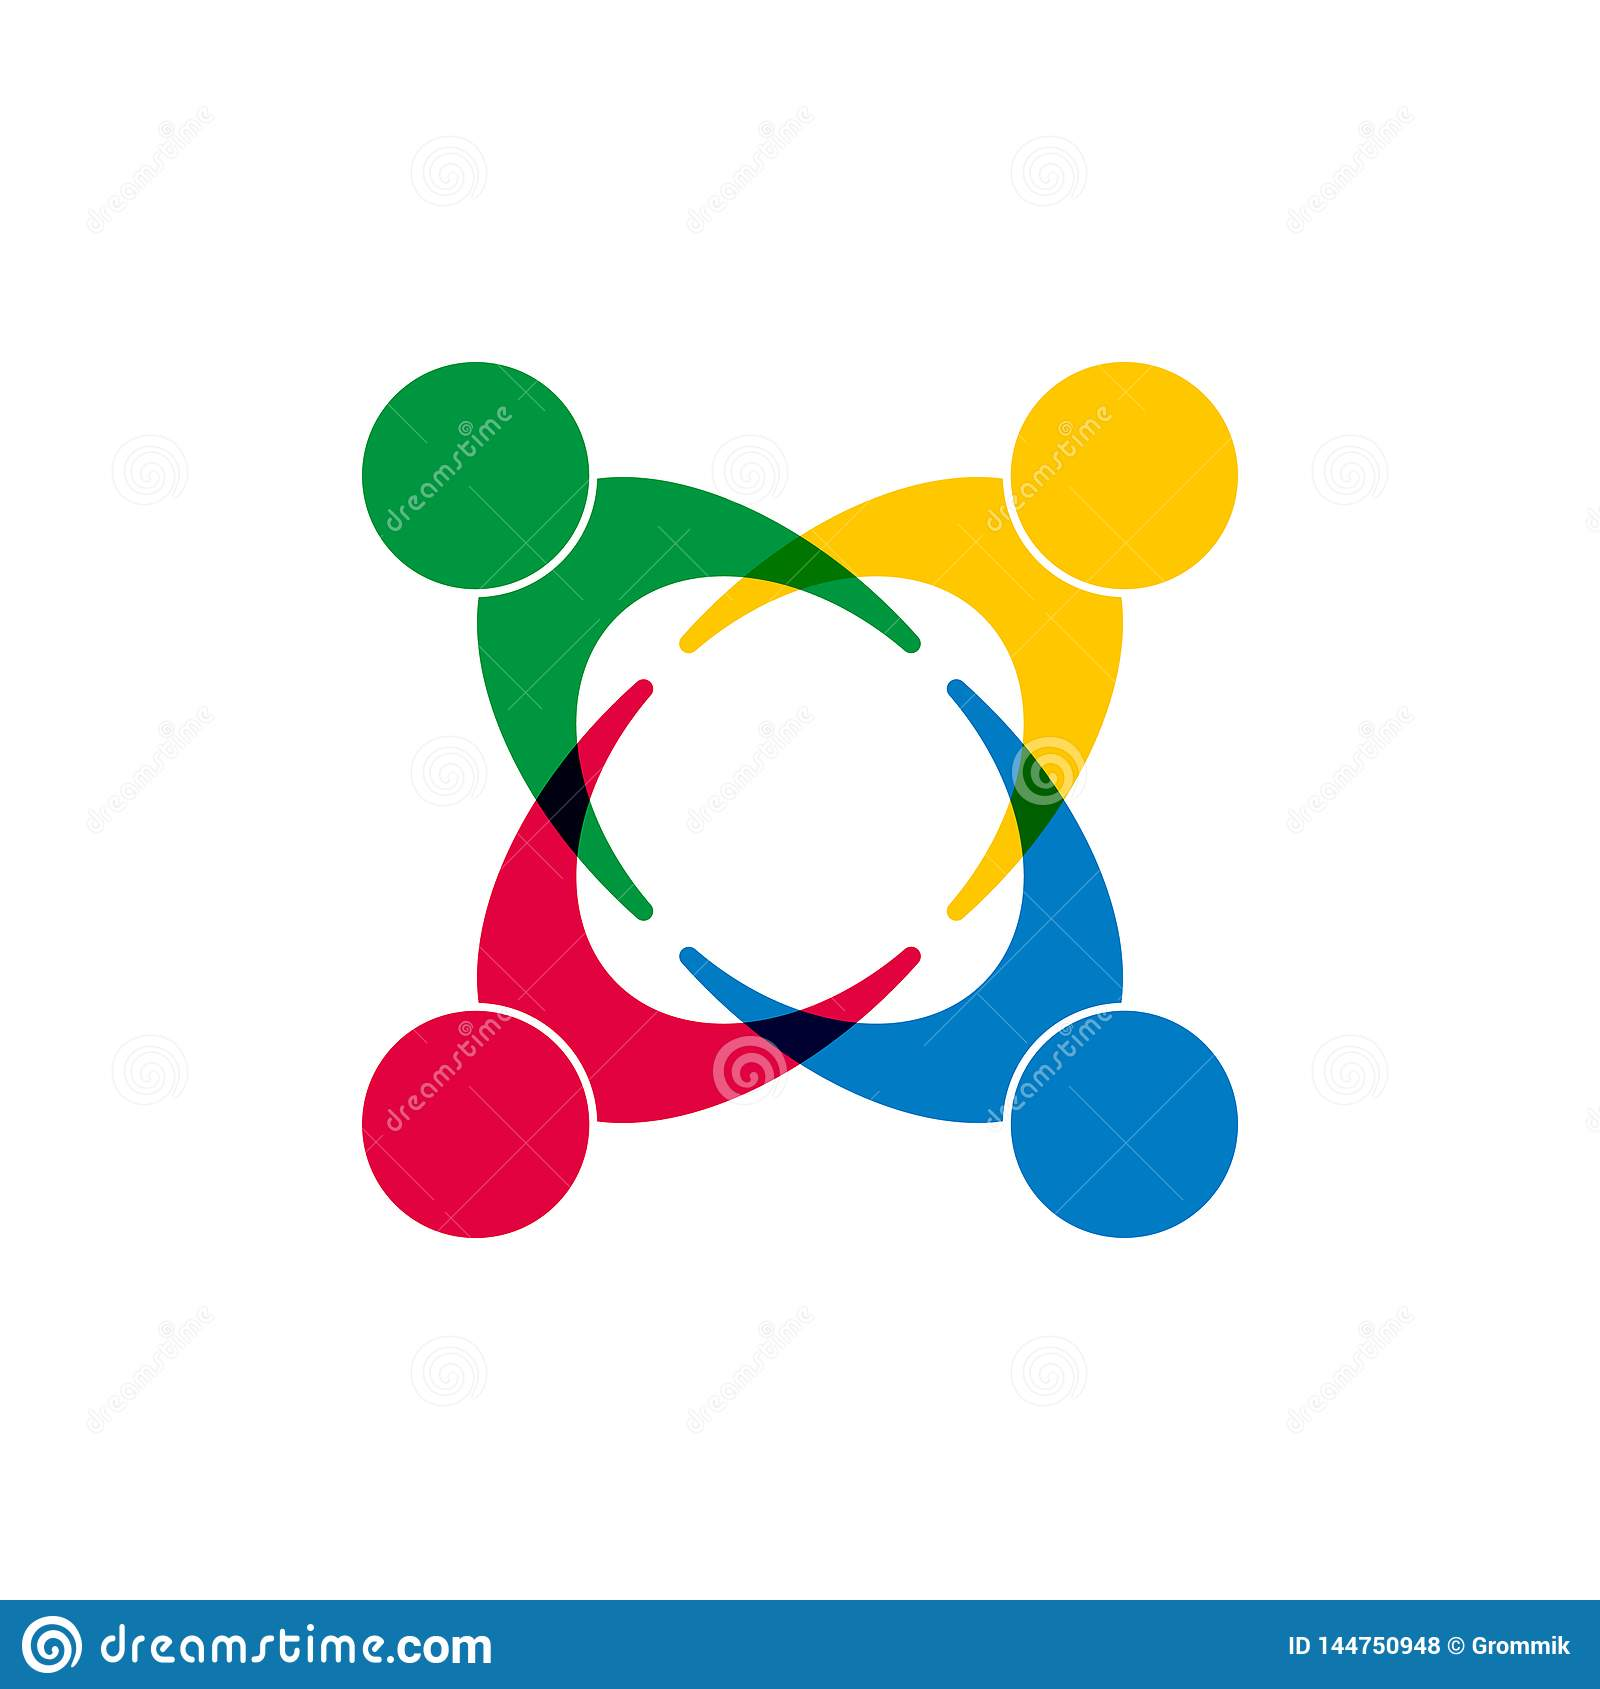 Symbol Of Unity Of Different People, Simple Design Stock ...